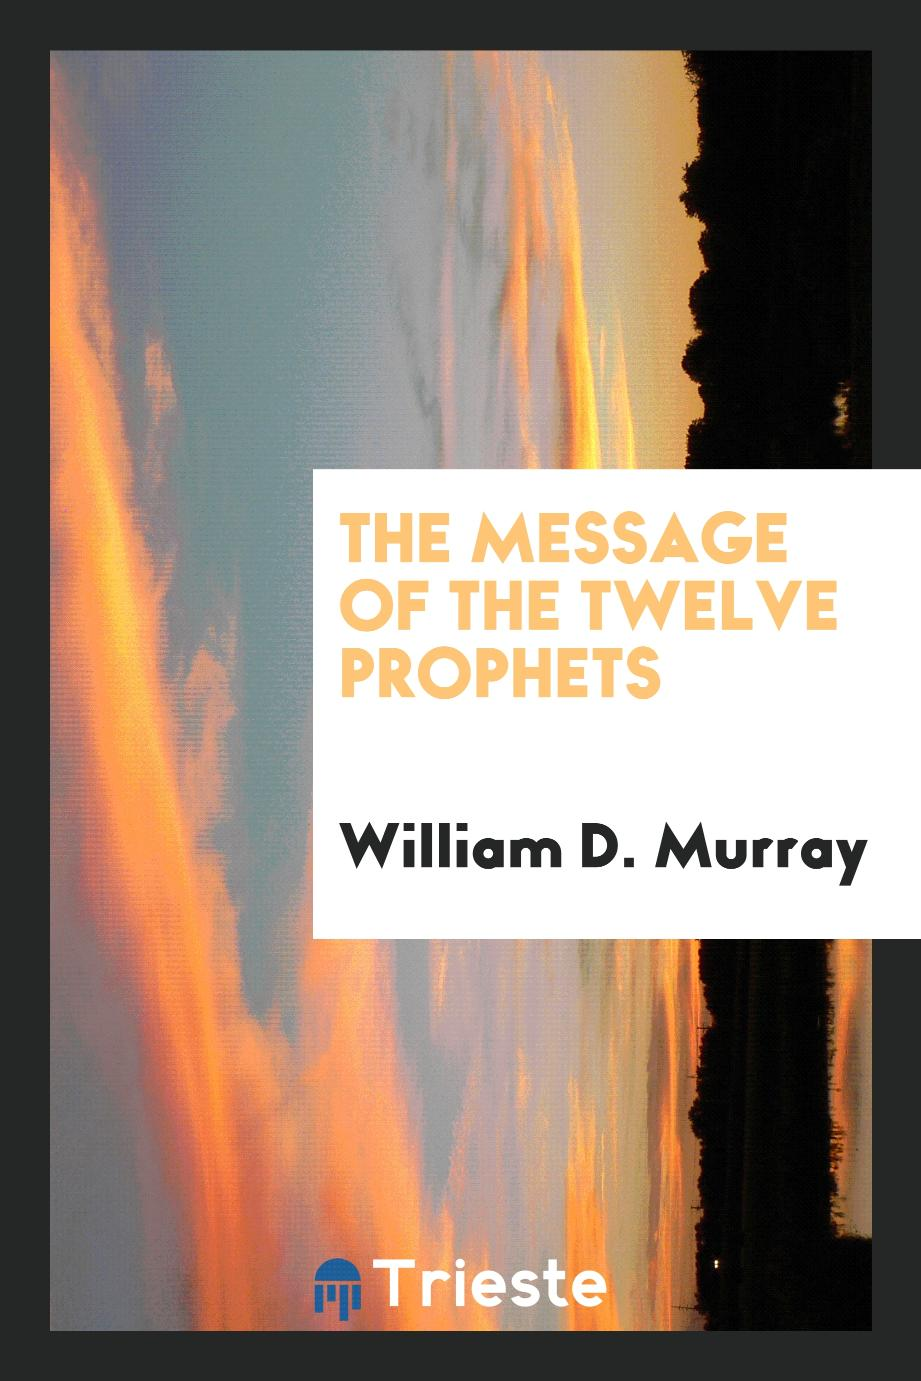 The message of the twelve prophets